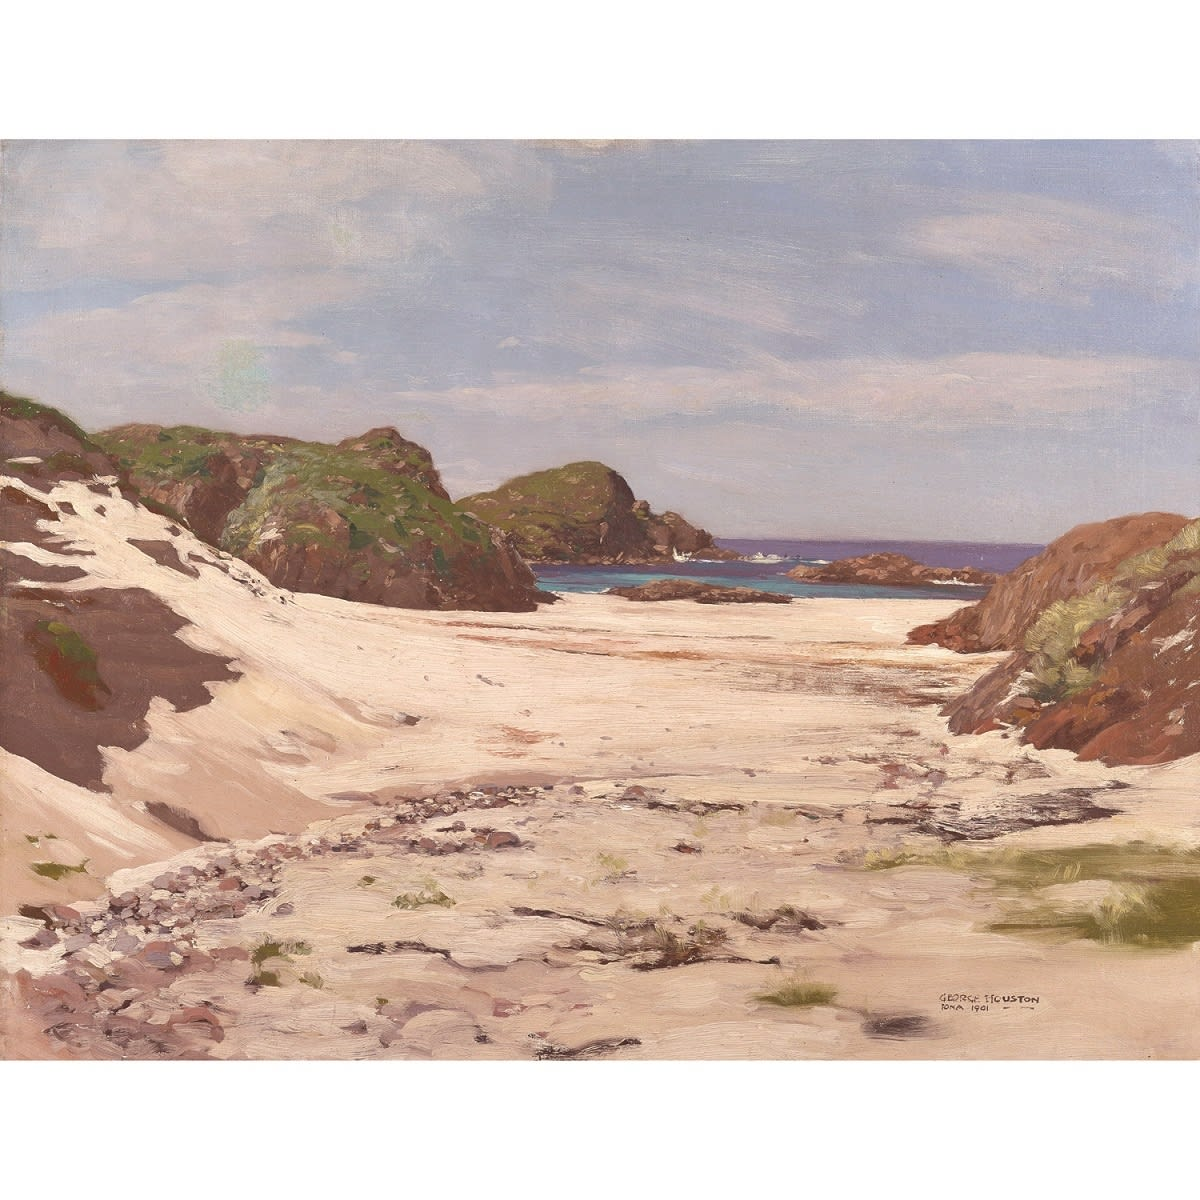 George Houston Iona, 1901 signed, titled and dated 1901 oil on canvas 28 x 36 inches